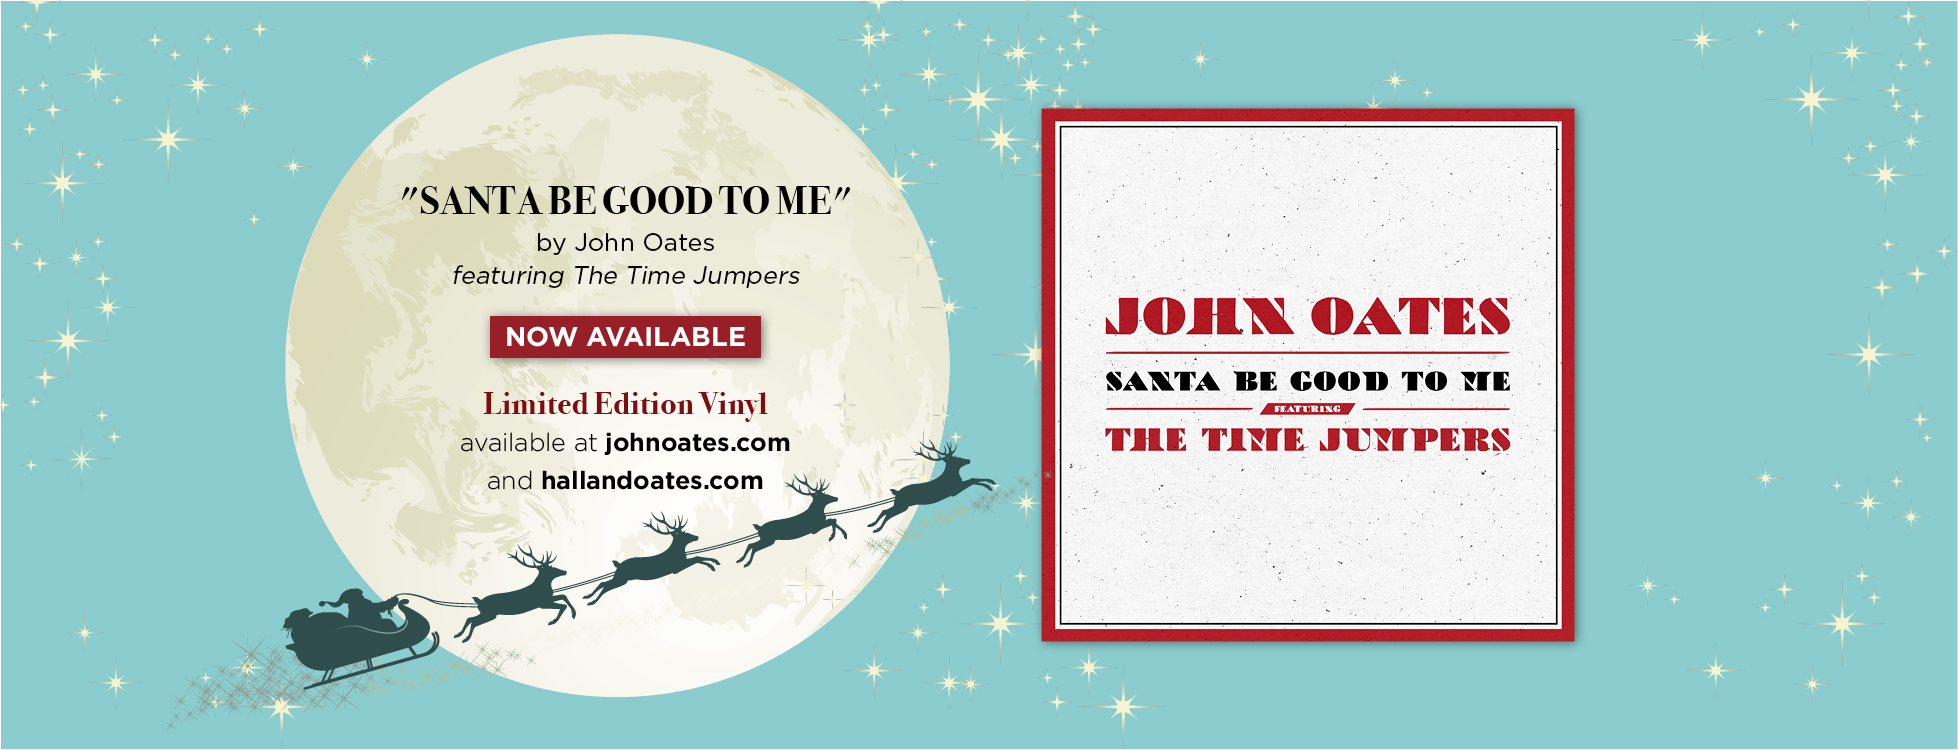 John Oates Releases New Holiday Single Santa Be Good To Me